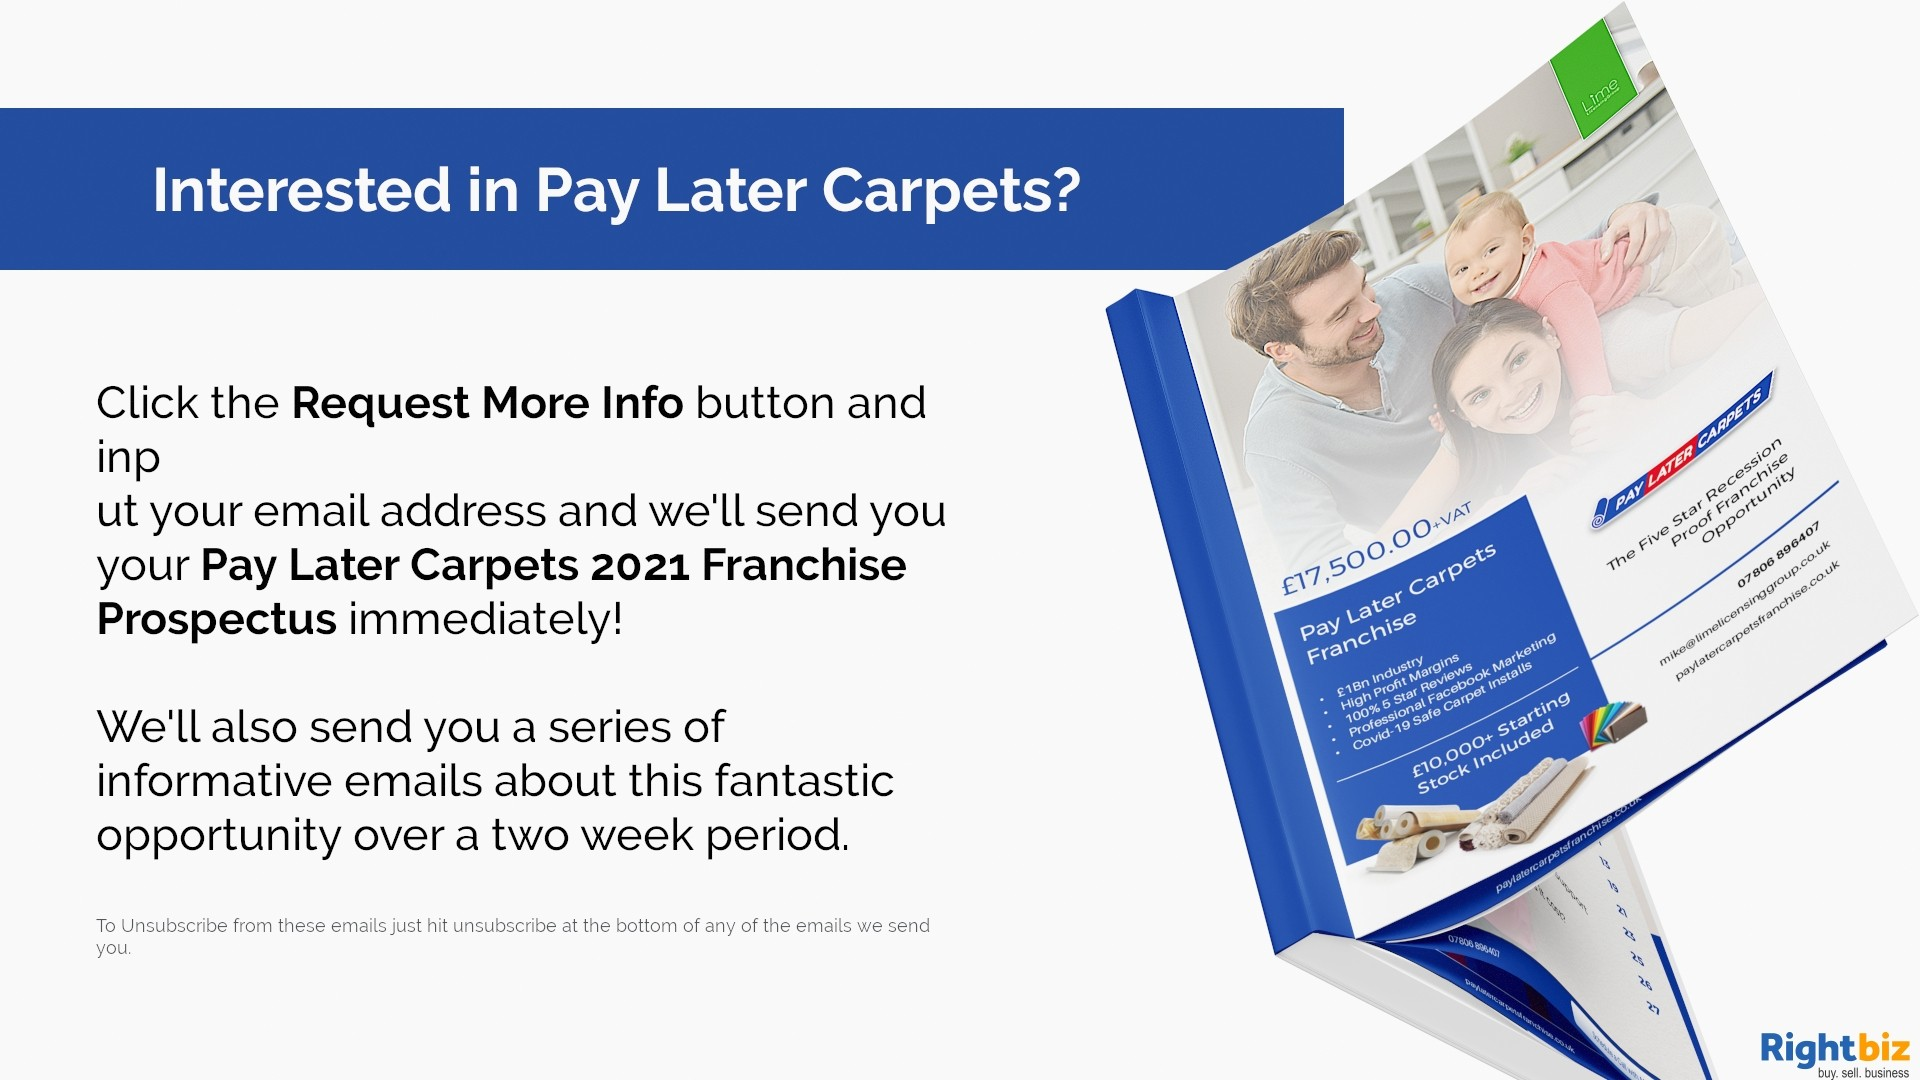 Pay Later Carpets Franchise Derry Our First Franchisee Made £11,000+ Profit in Month One - Image 6